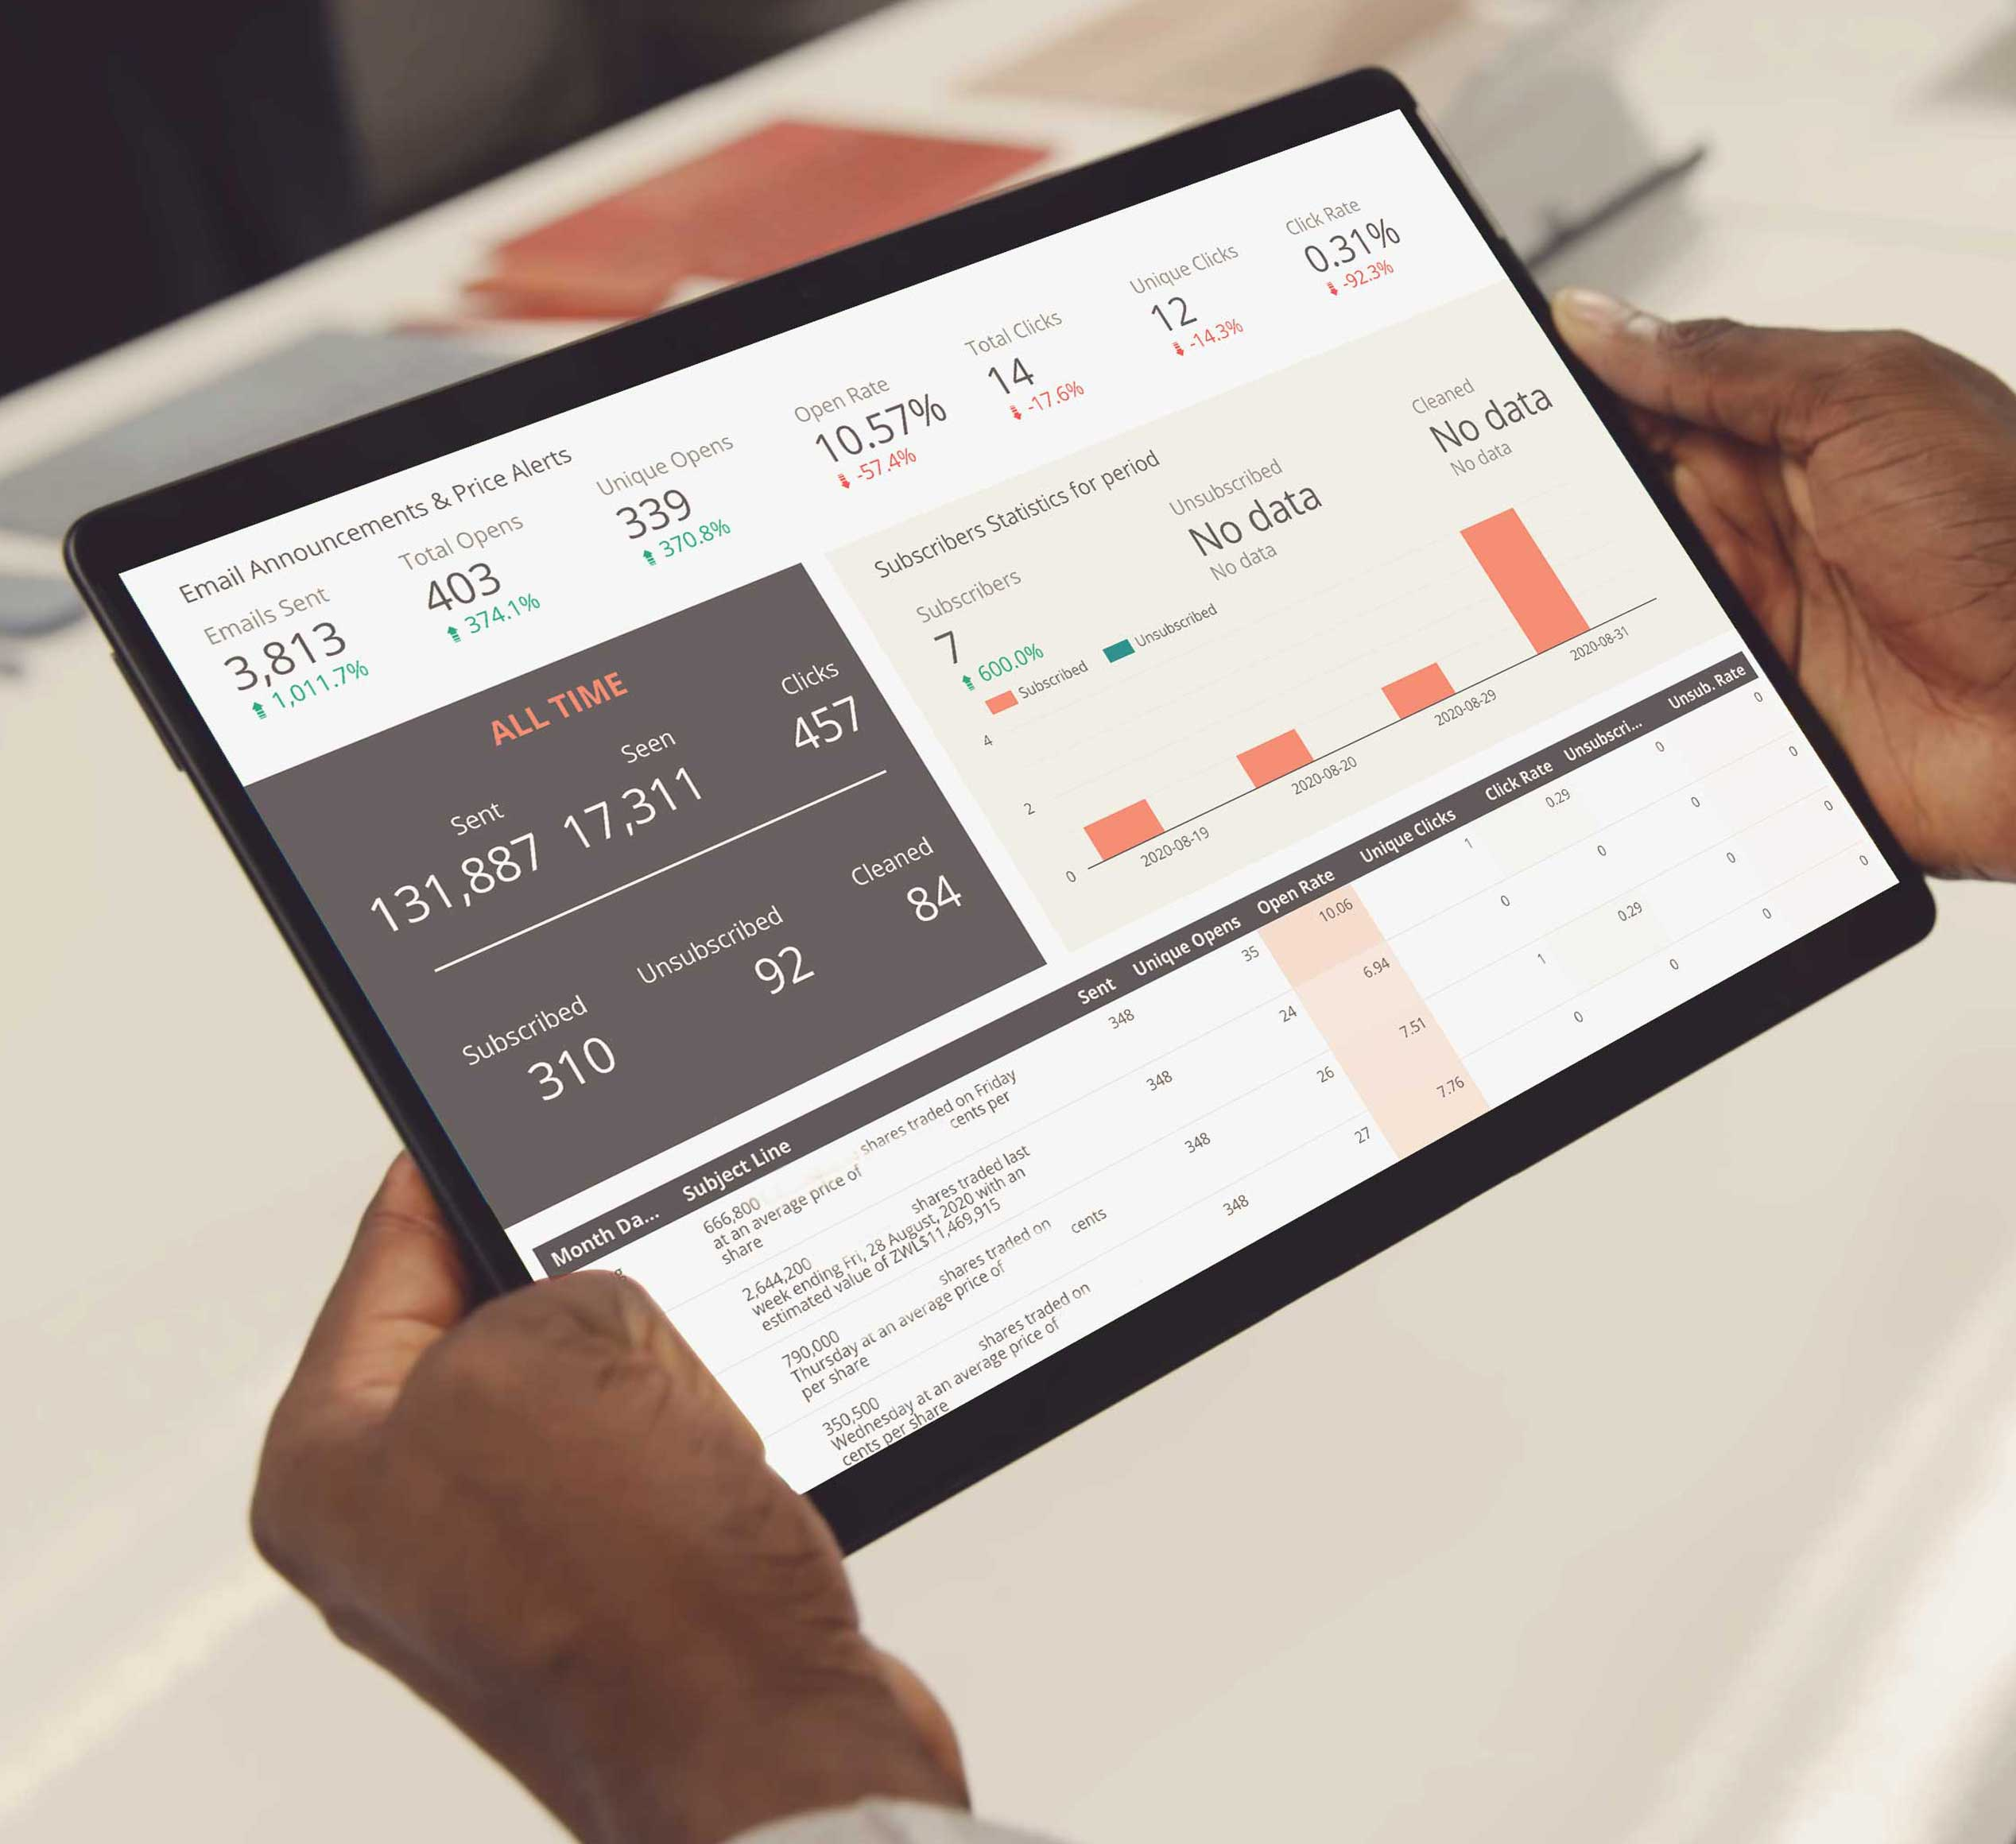 African investor relations dashboard